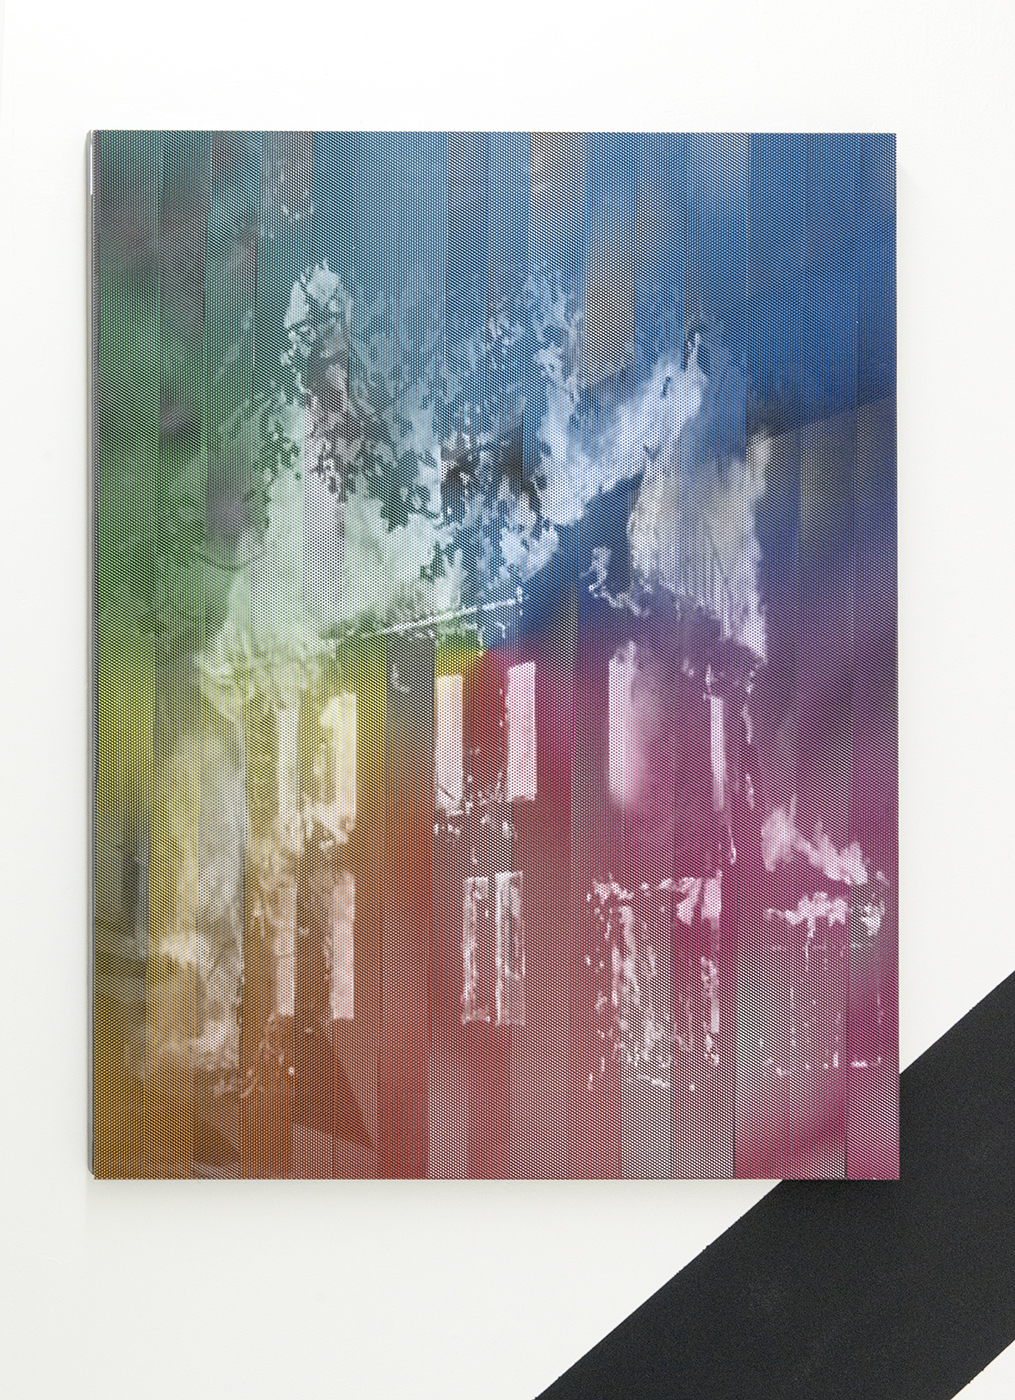 """James Cordas, """"Full Spectrum Suburban House Fire,"""" 2015. 36 x 30''. Steel, perforated vinyl, mirror. Image courtesy of et al. gallery and the artist."""